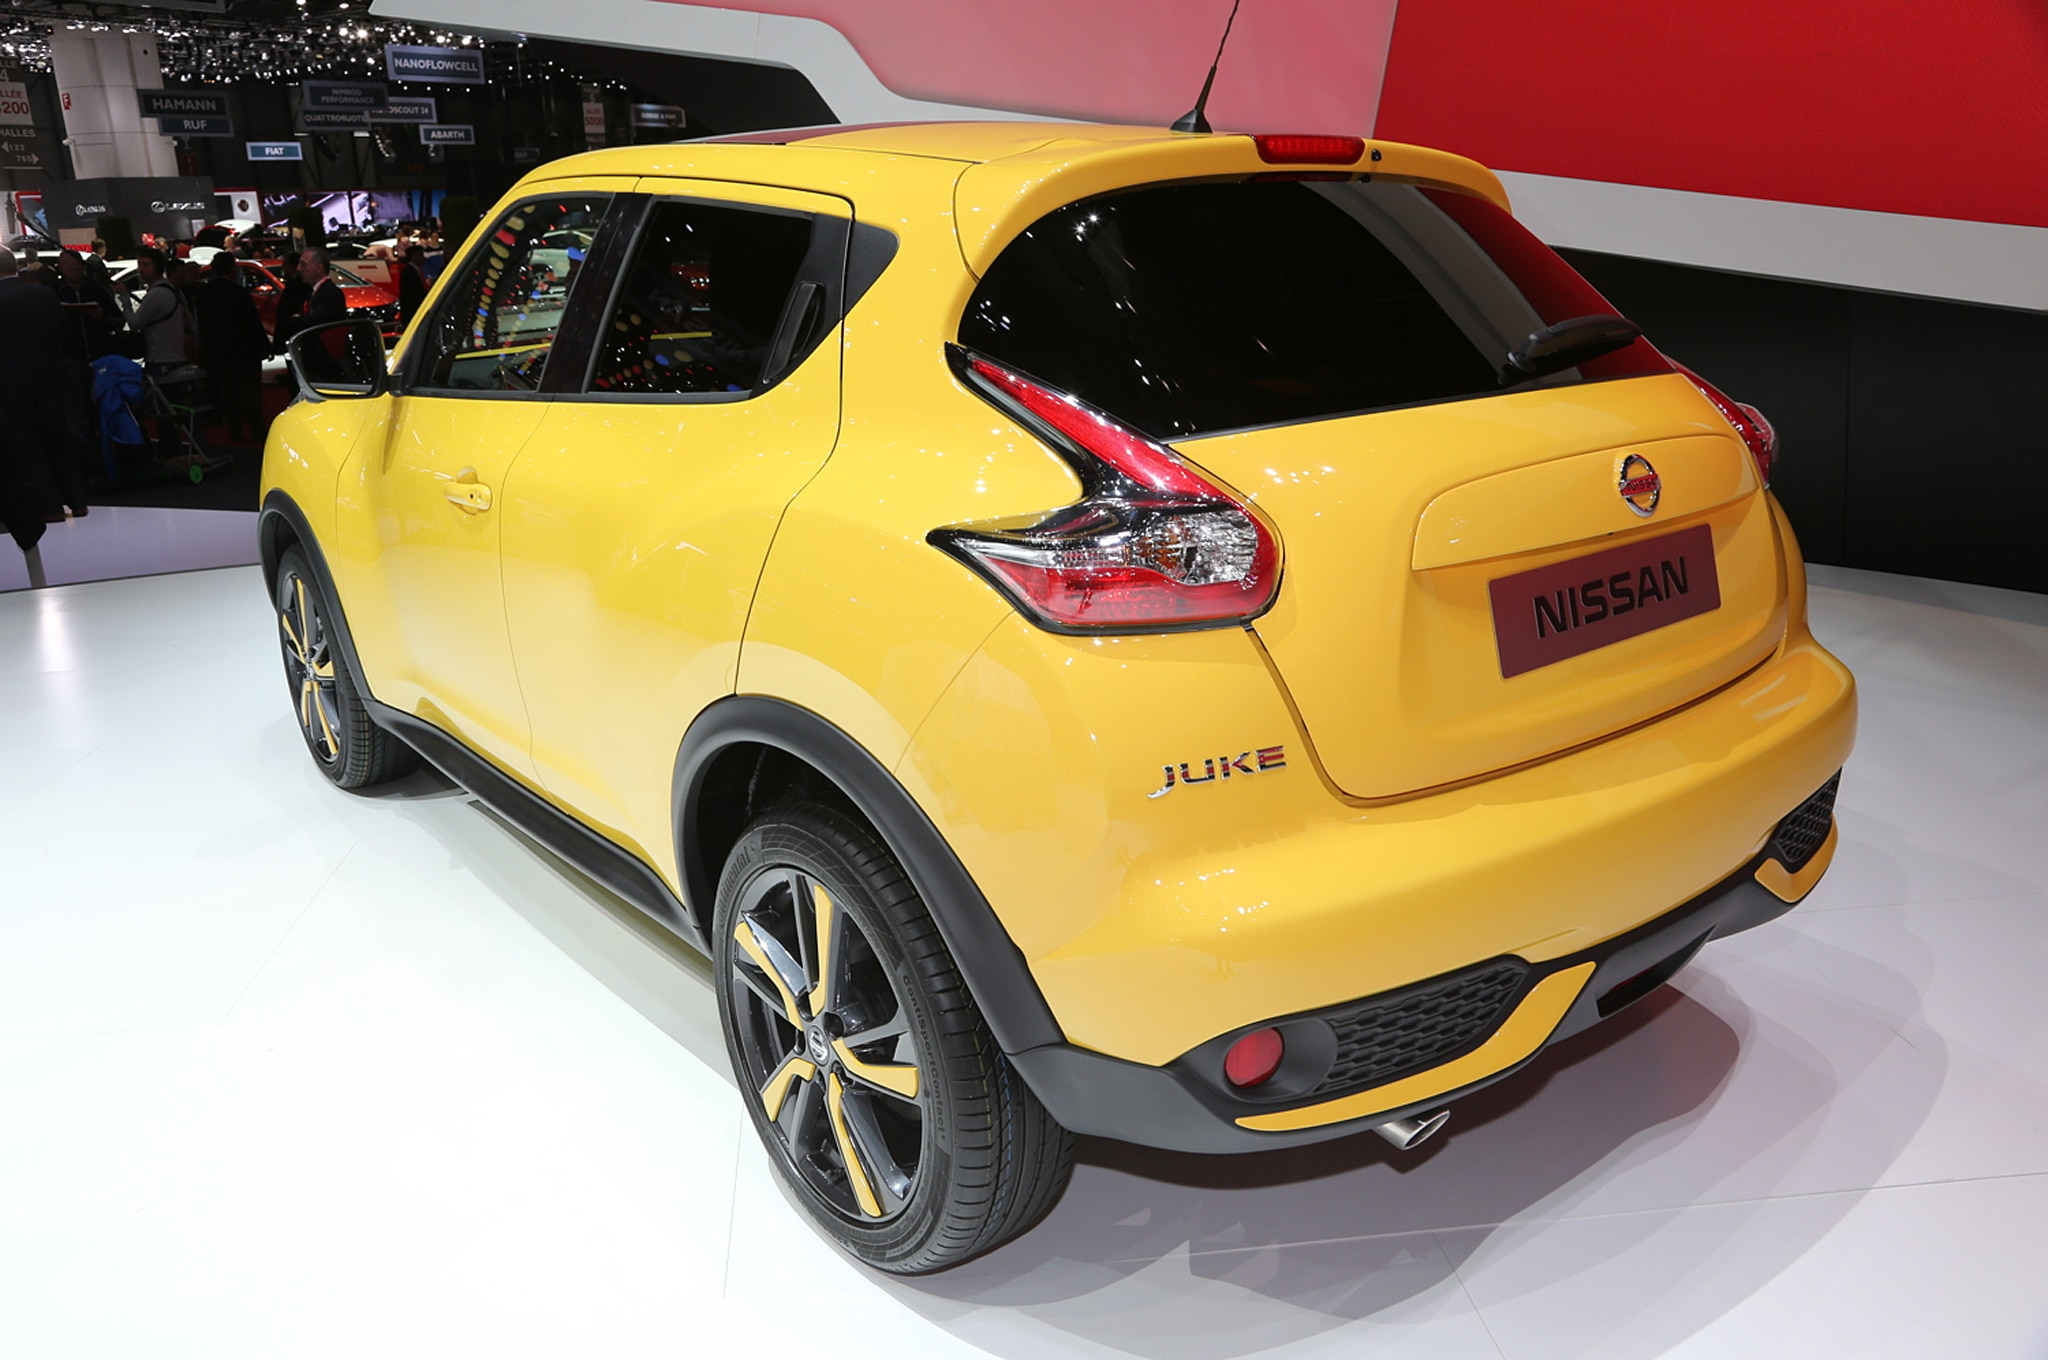 2015 Nissan Juke Refresh Rolls into Geneva - Automobile ...